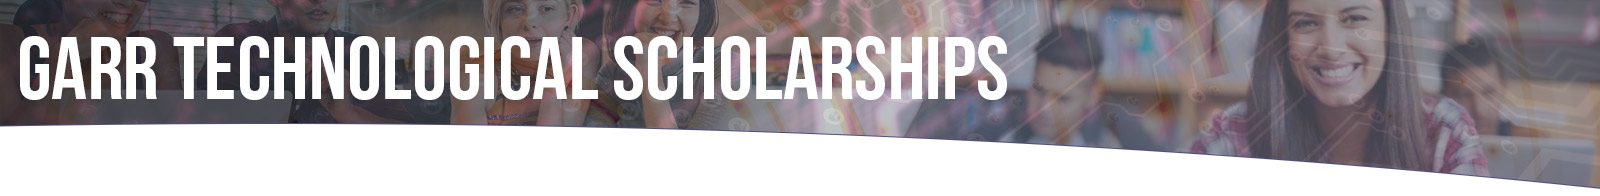 GARR echnological Scholarships